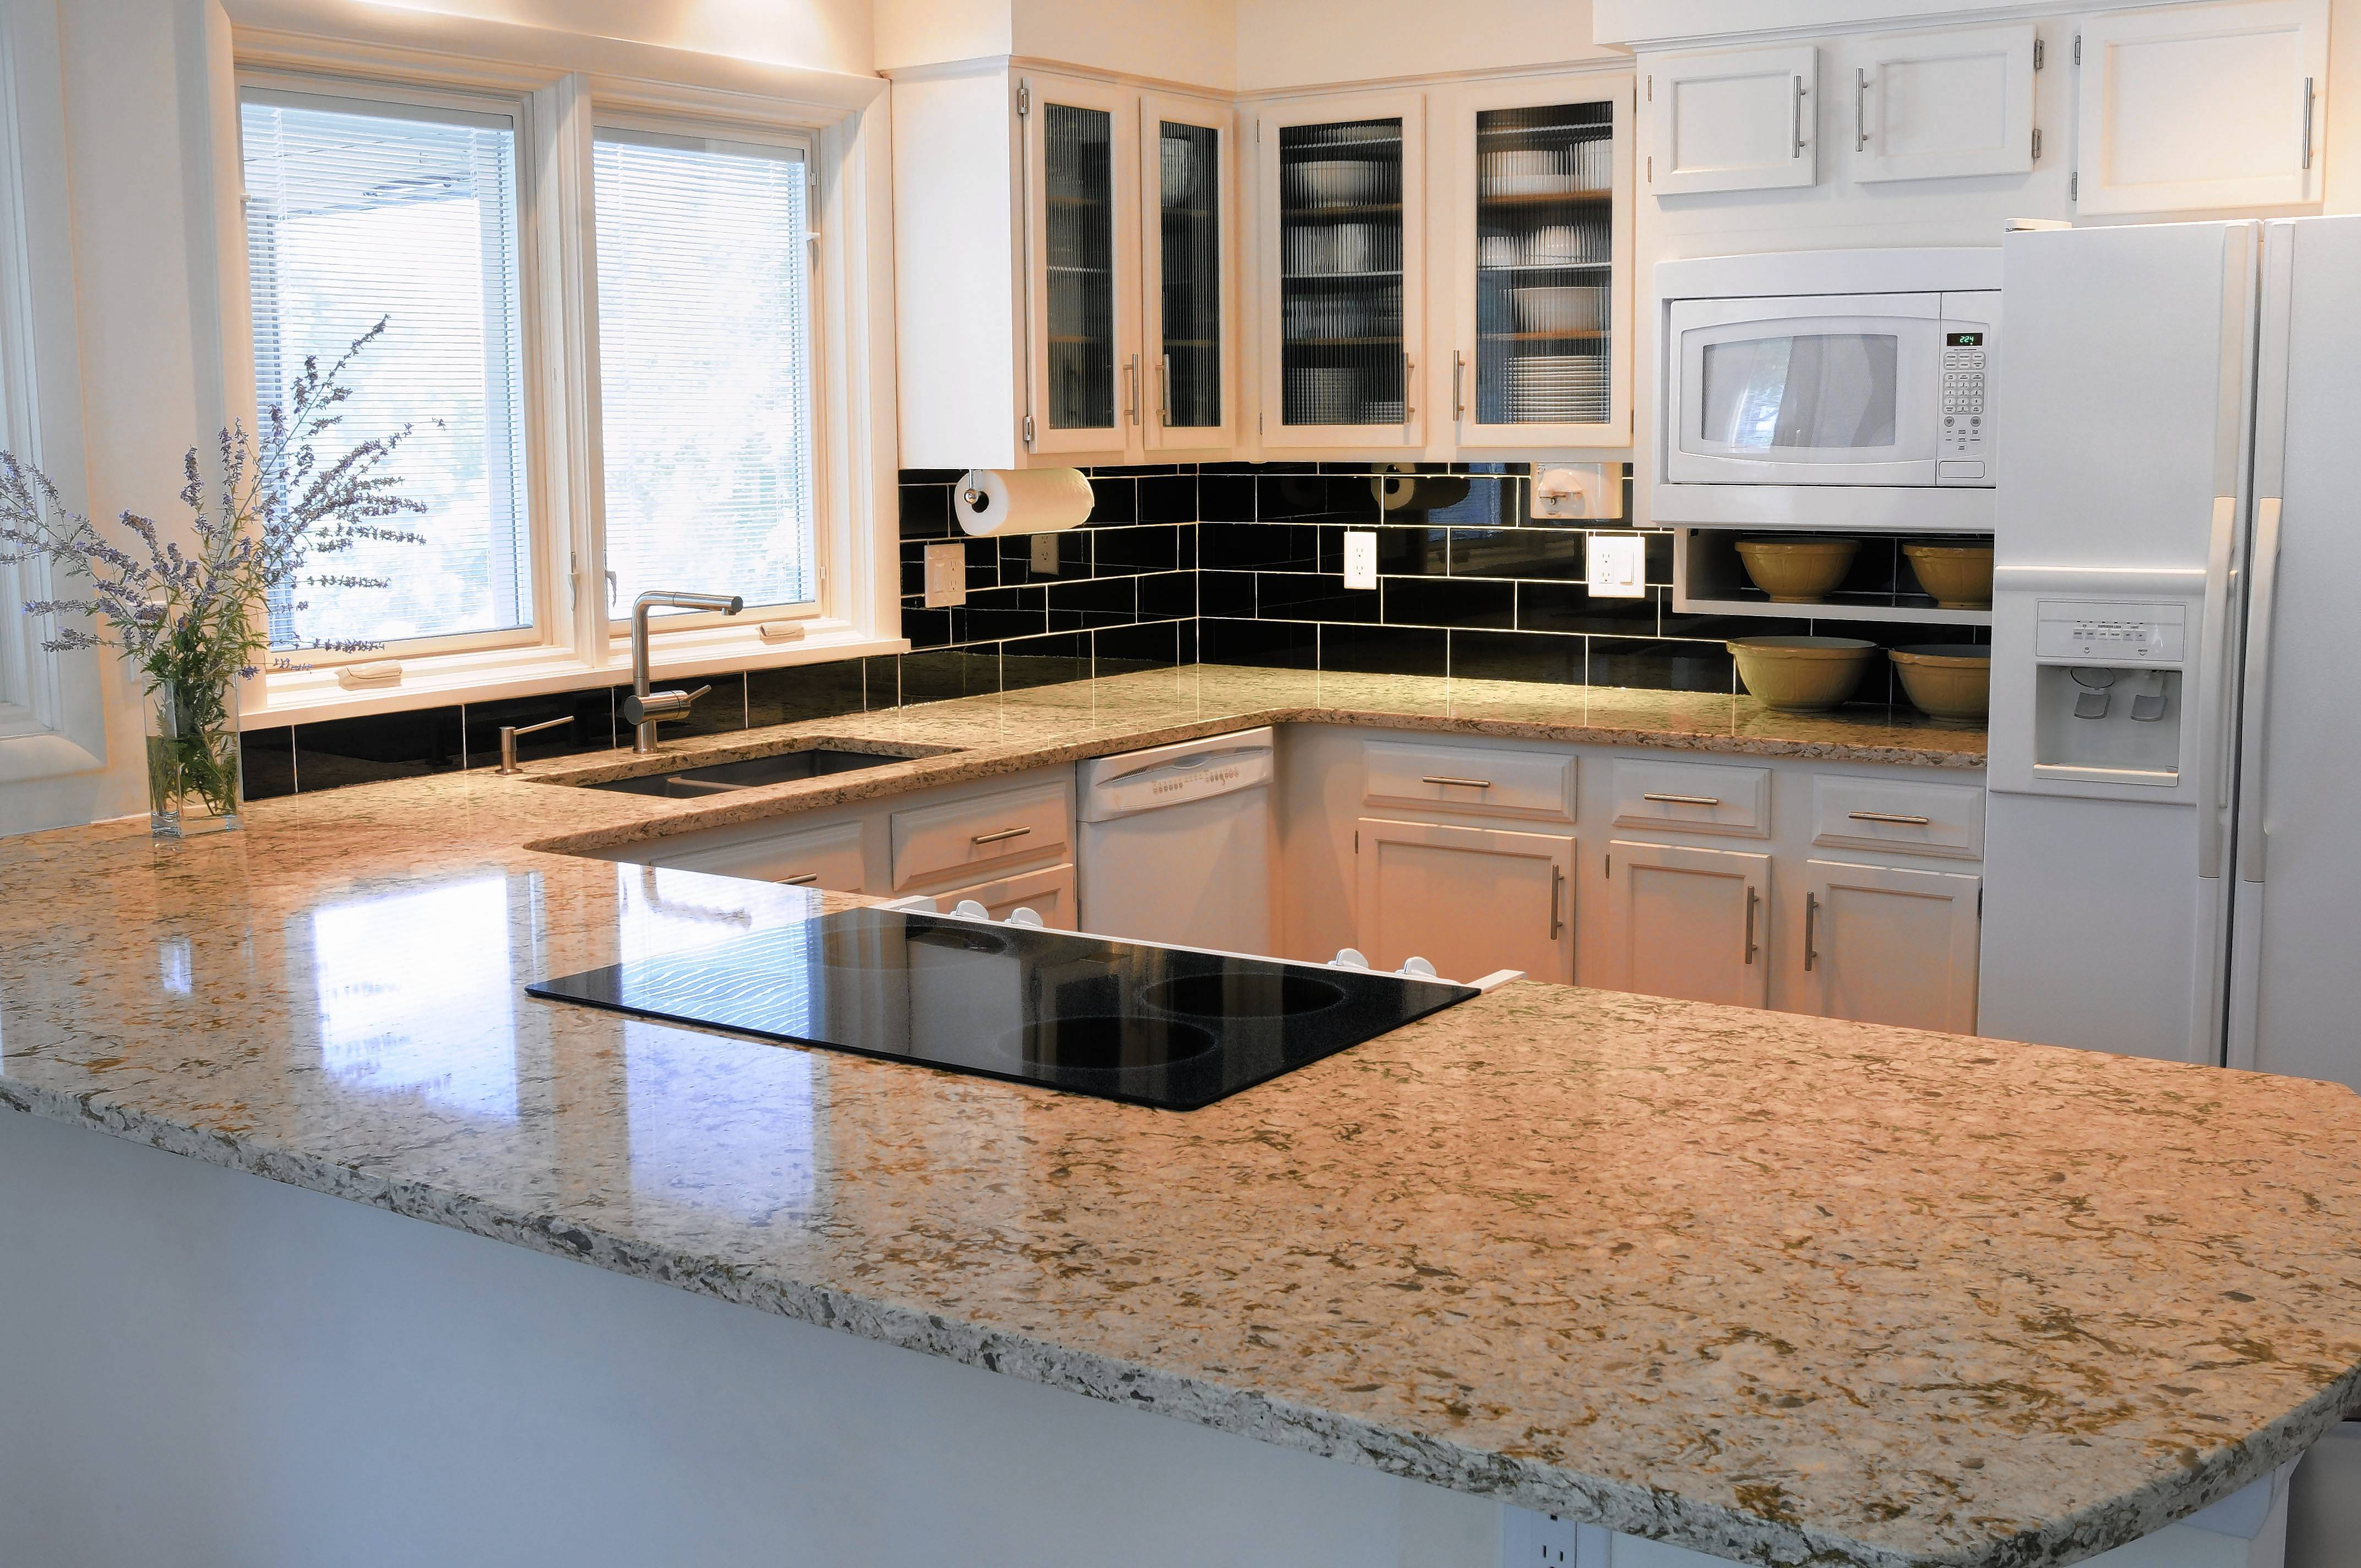 quartz stone countertops sparkling white quartz quartz countertops are maintenance free unlike granite they do not require repeated applications of appliances in rich colors and quartz couldnt be hotter